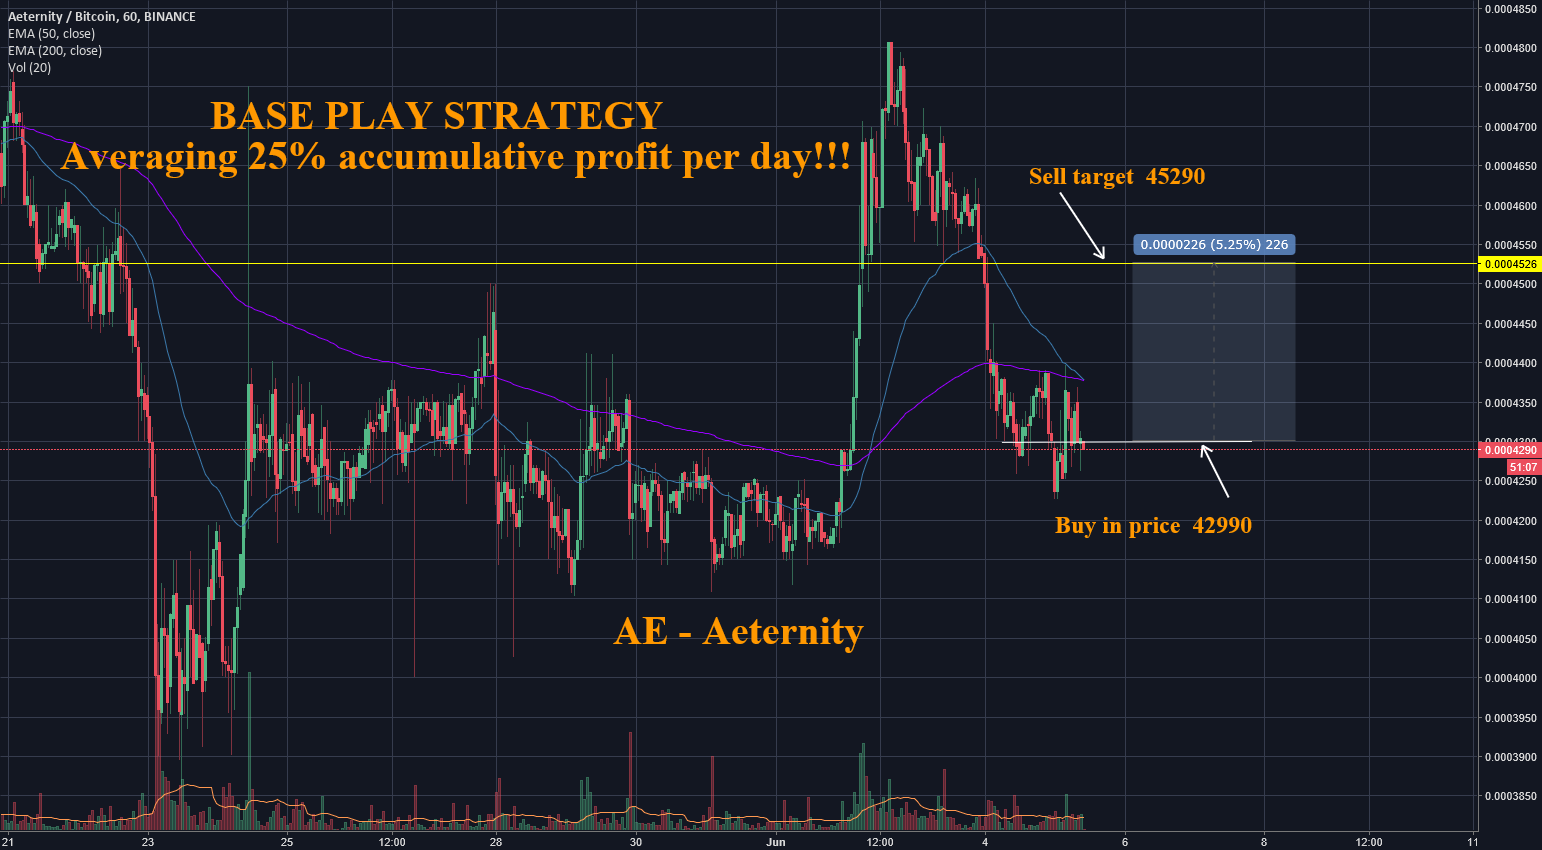 Base Play Strategy - 1719% Accumulative Profit in 69 Days !!!